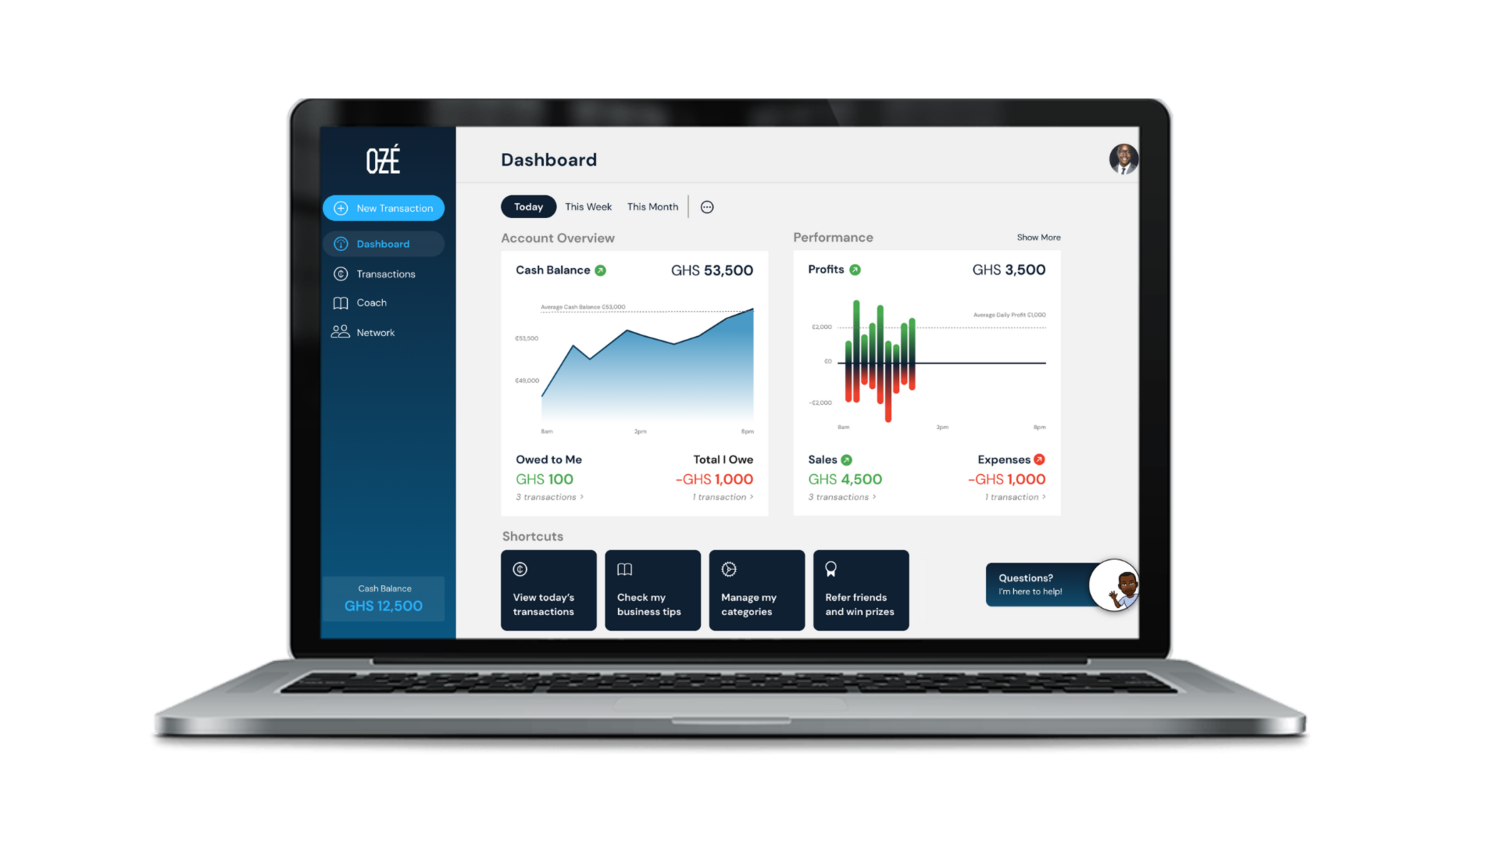 Get a dashboard and receive reports on how to grow your business!